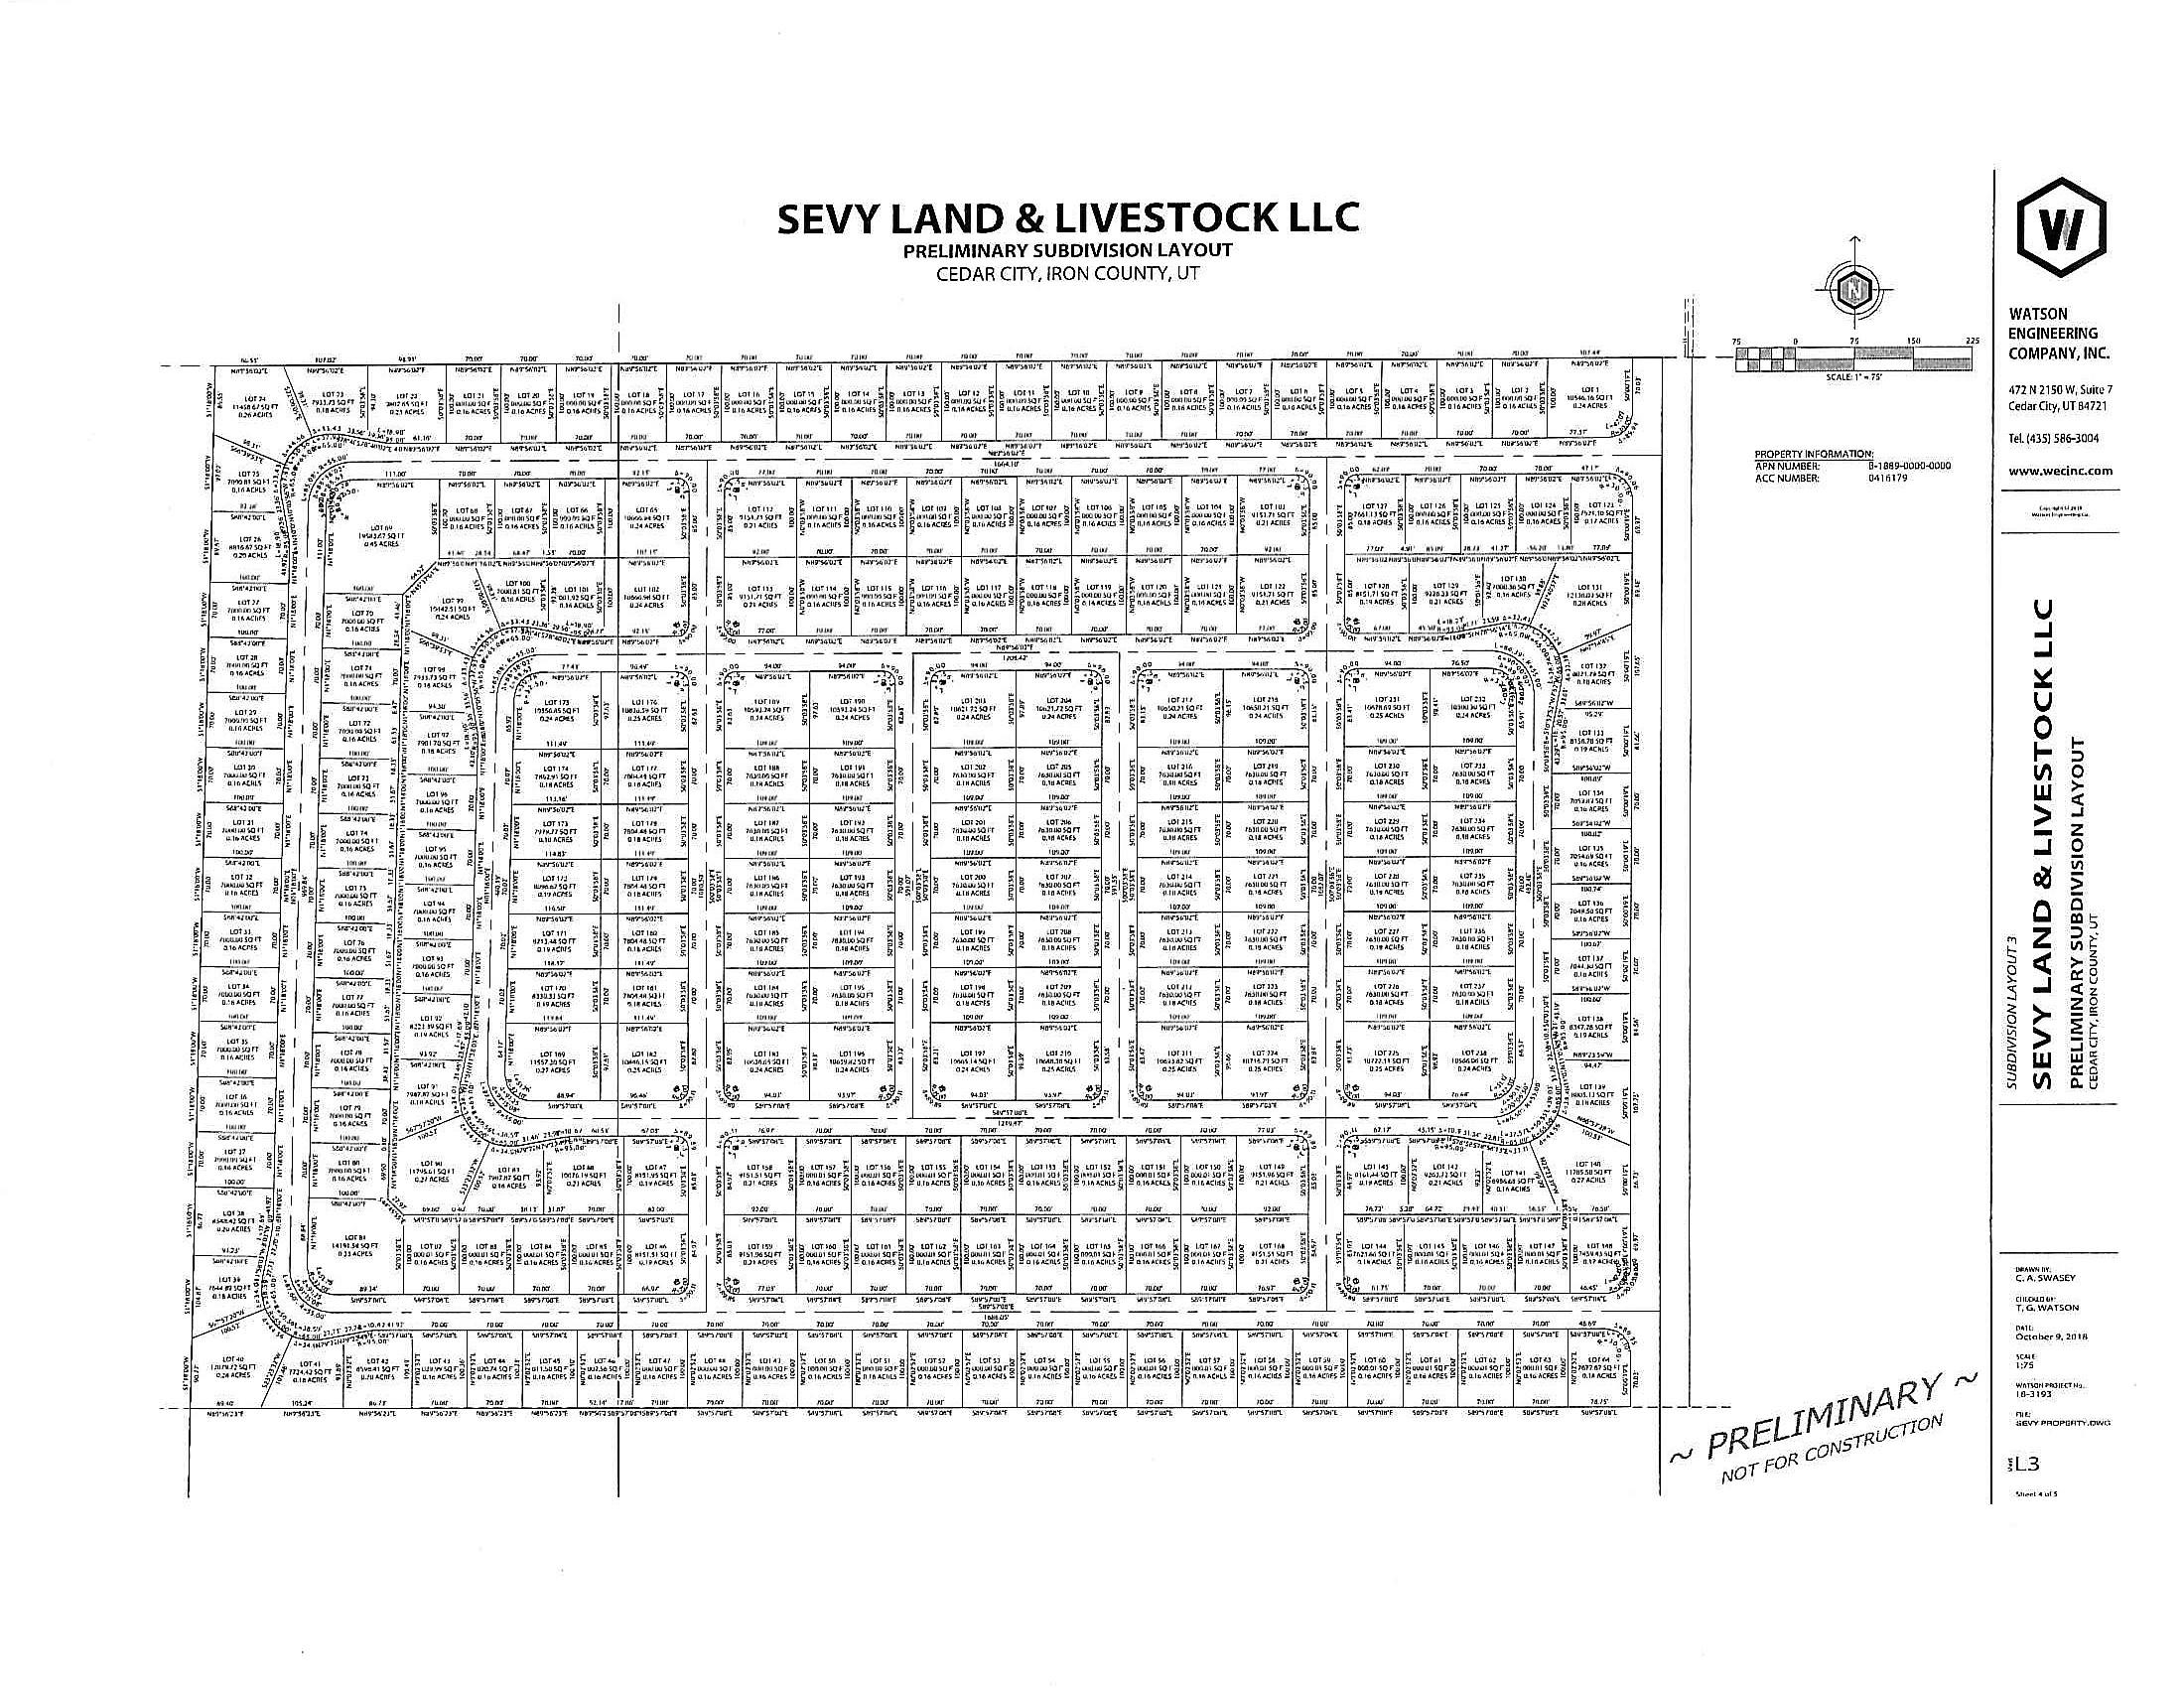 Amazing investment opportunity! 53 Acres of sub-dividable land. Great location right at the Southwest corner of Equestrian Pointe. Proposed Subdivision Layouts available. Easy access to water and power. No water rights included, water fees are paid with the city.  Could also be a good land bank opportunity, property is currently being farmed, would continue to farm and kept in green belt